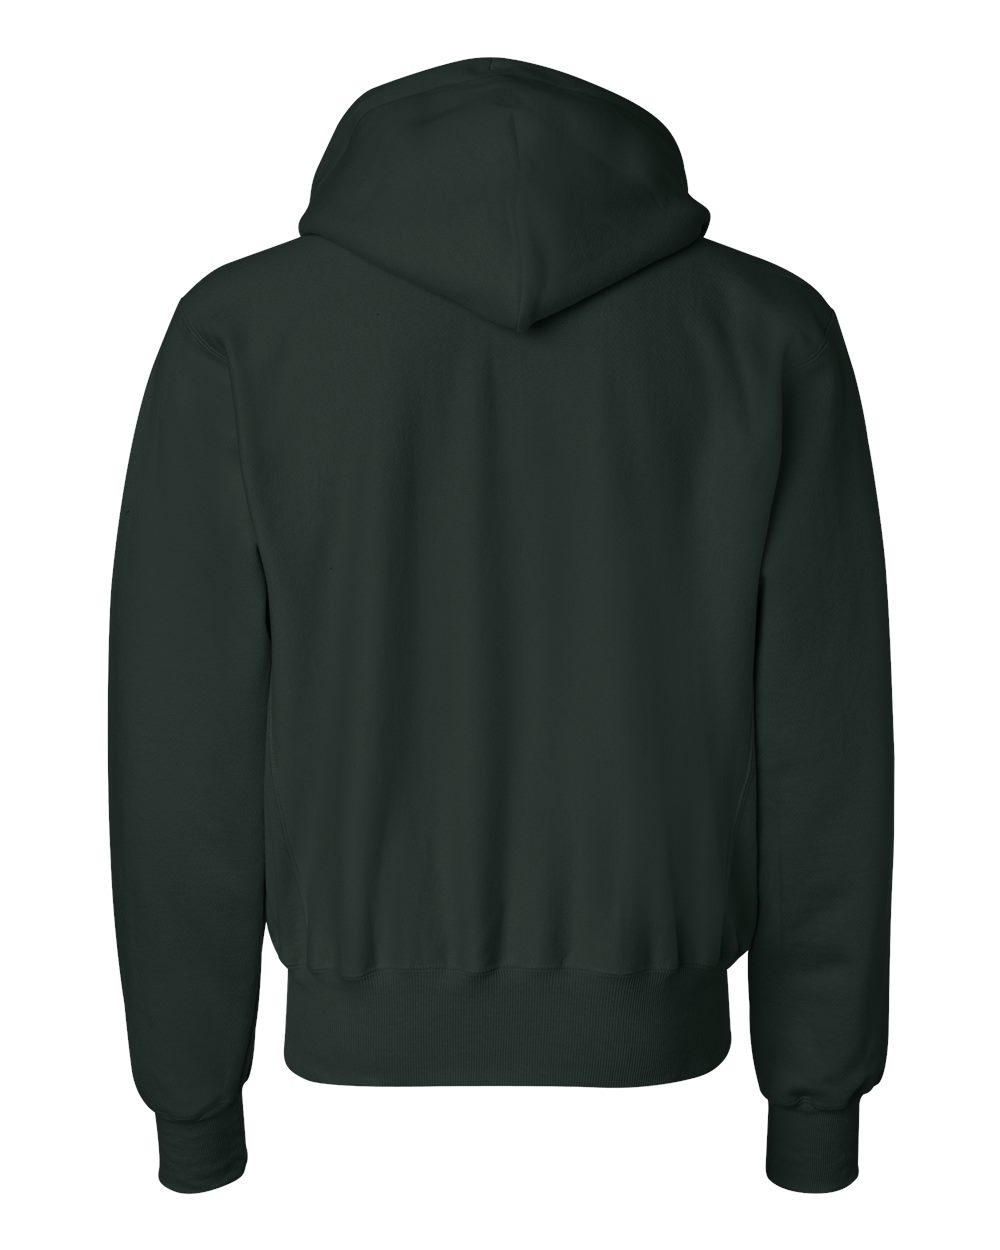 Champion-Mens-Reverse-Weave-Hooded-Pullover-Sweatshirt-S101-up-to-3XL thumbnail 25